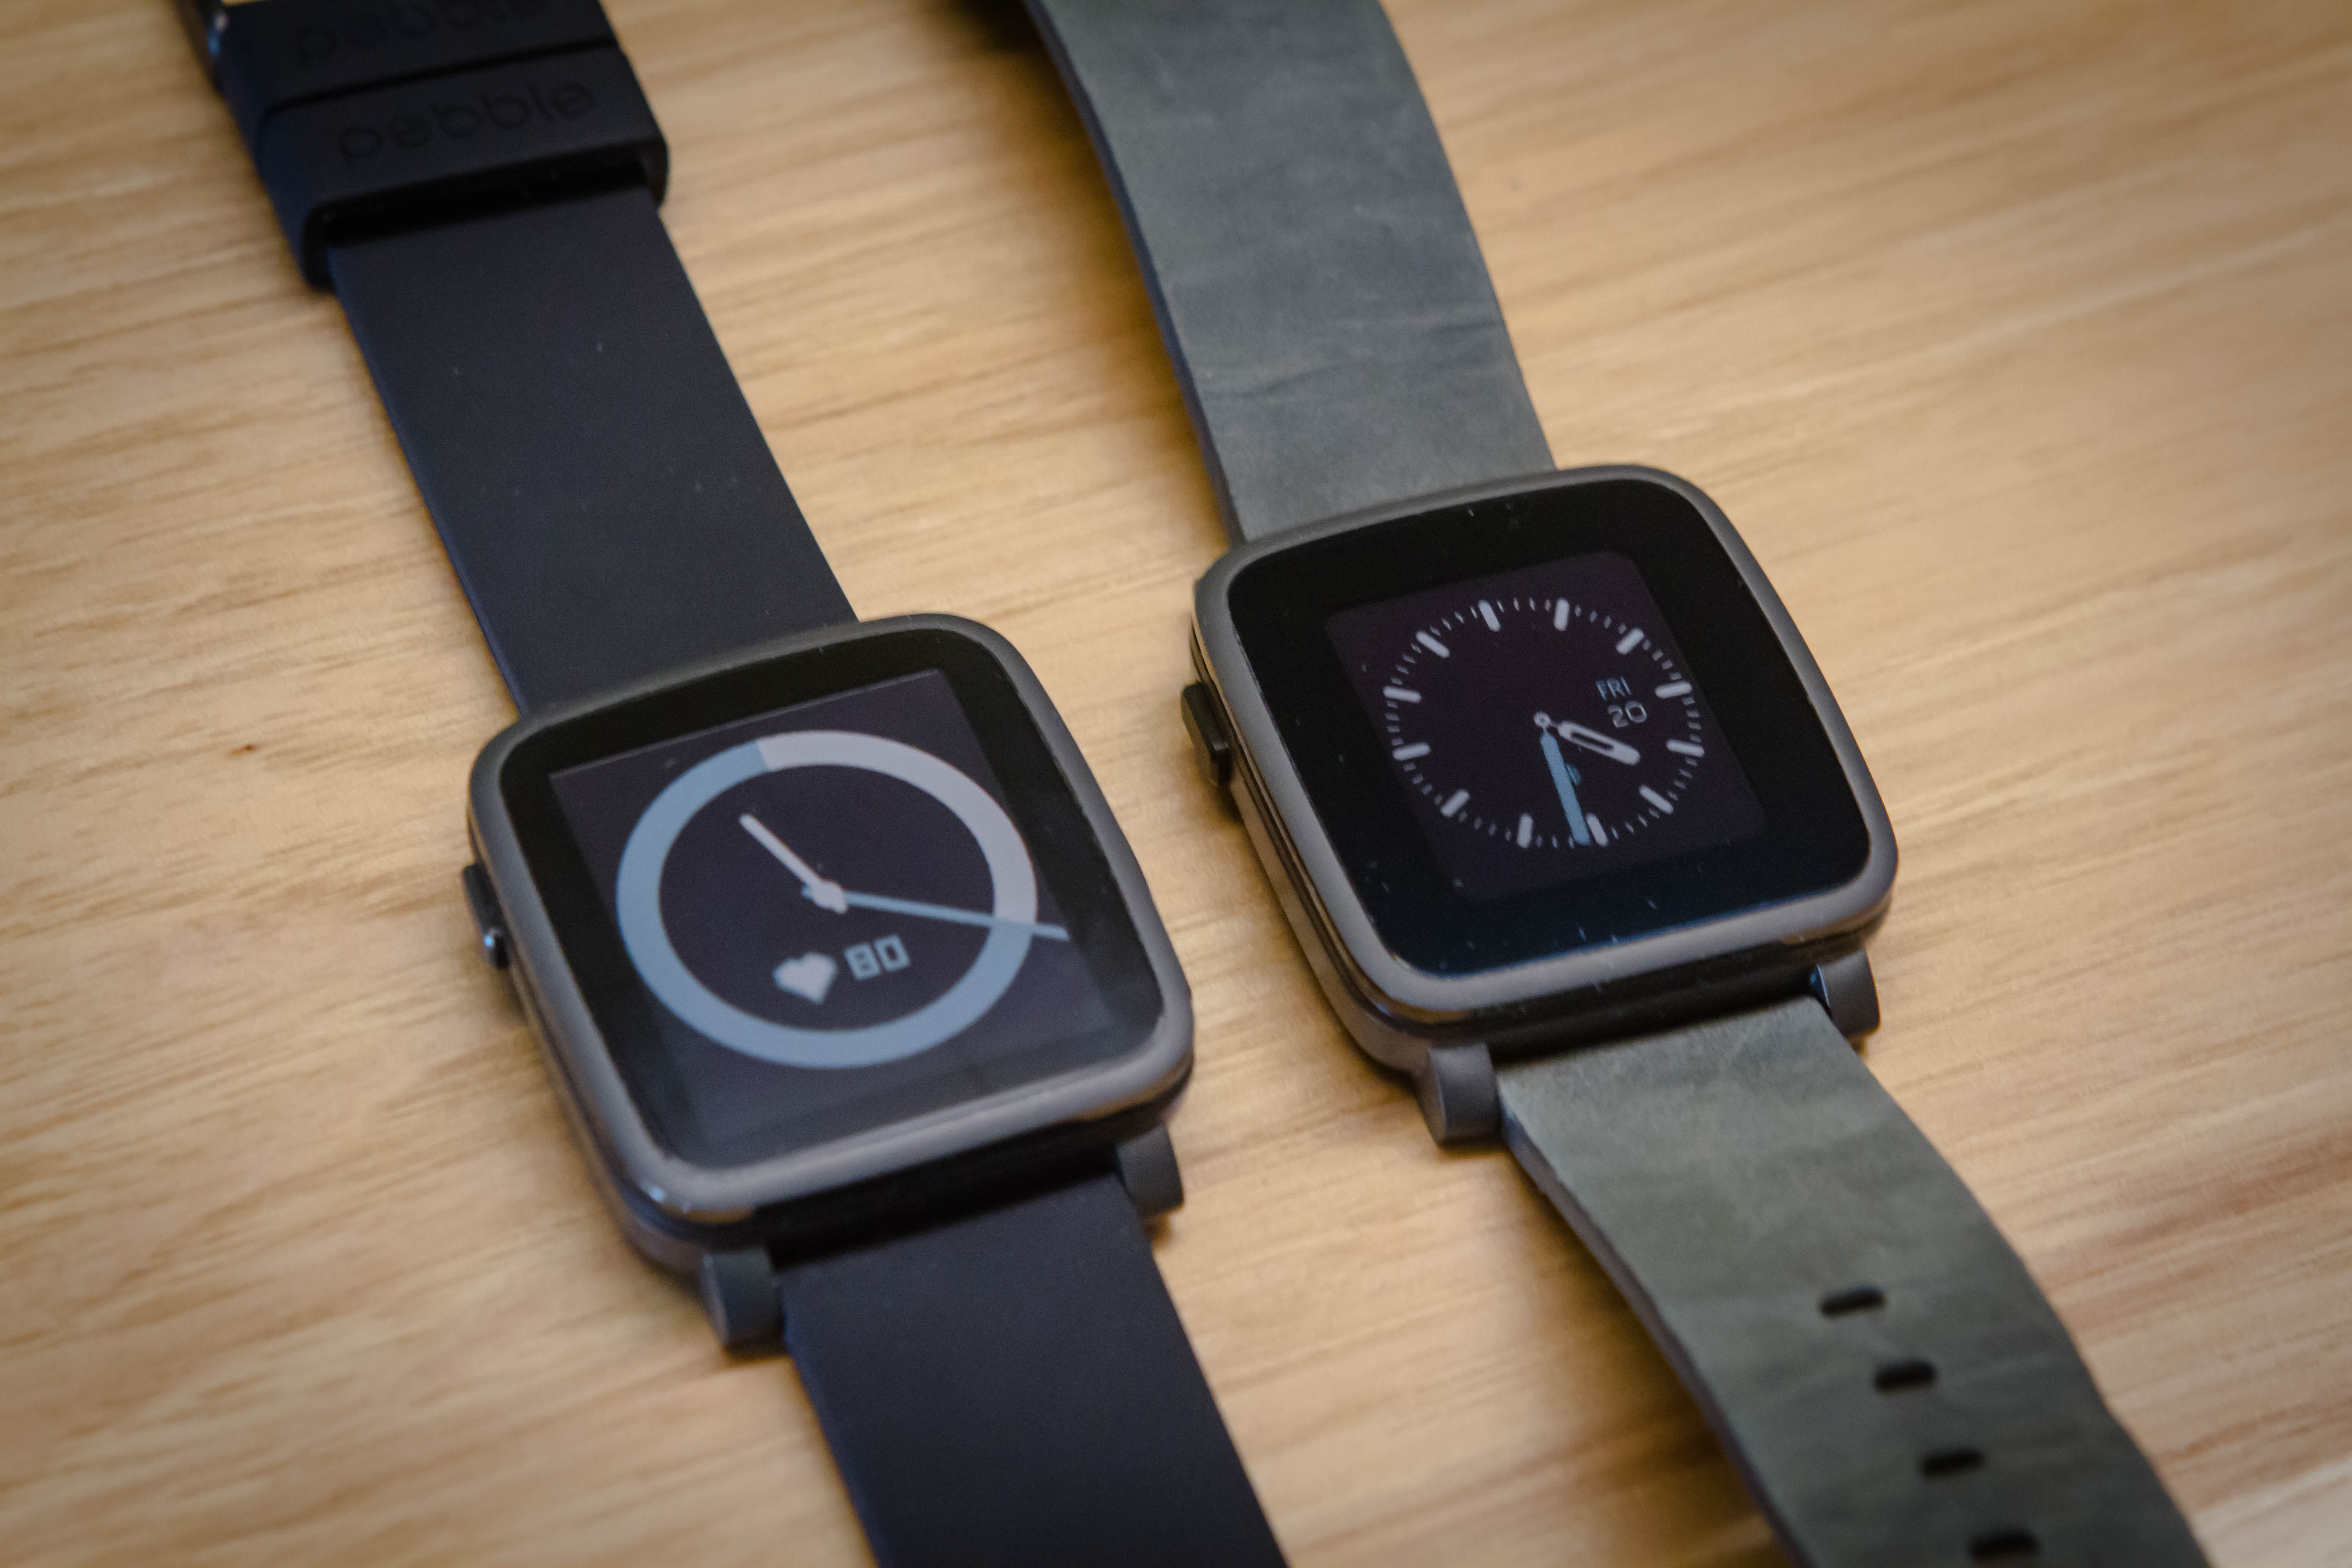 Left: Pebble Time 2, Right: old Pebble Time